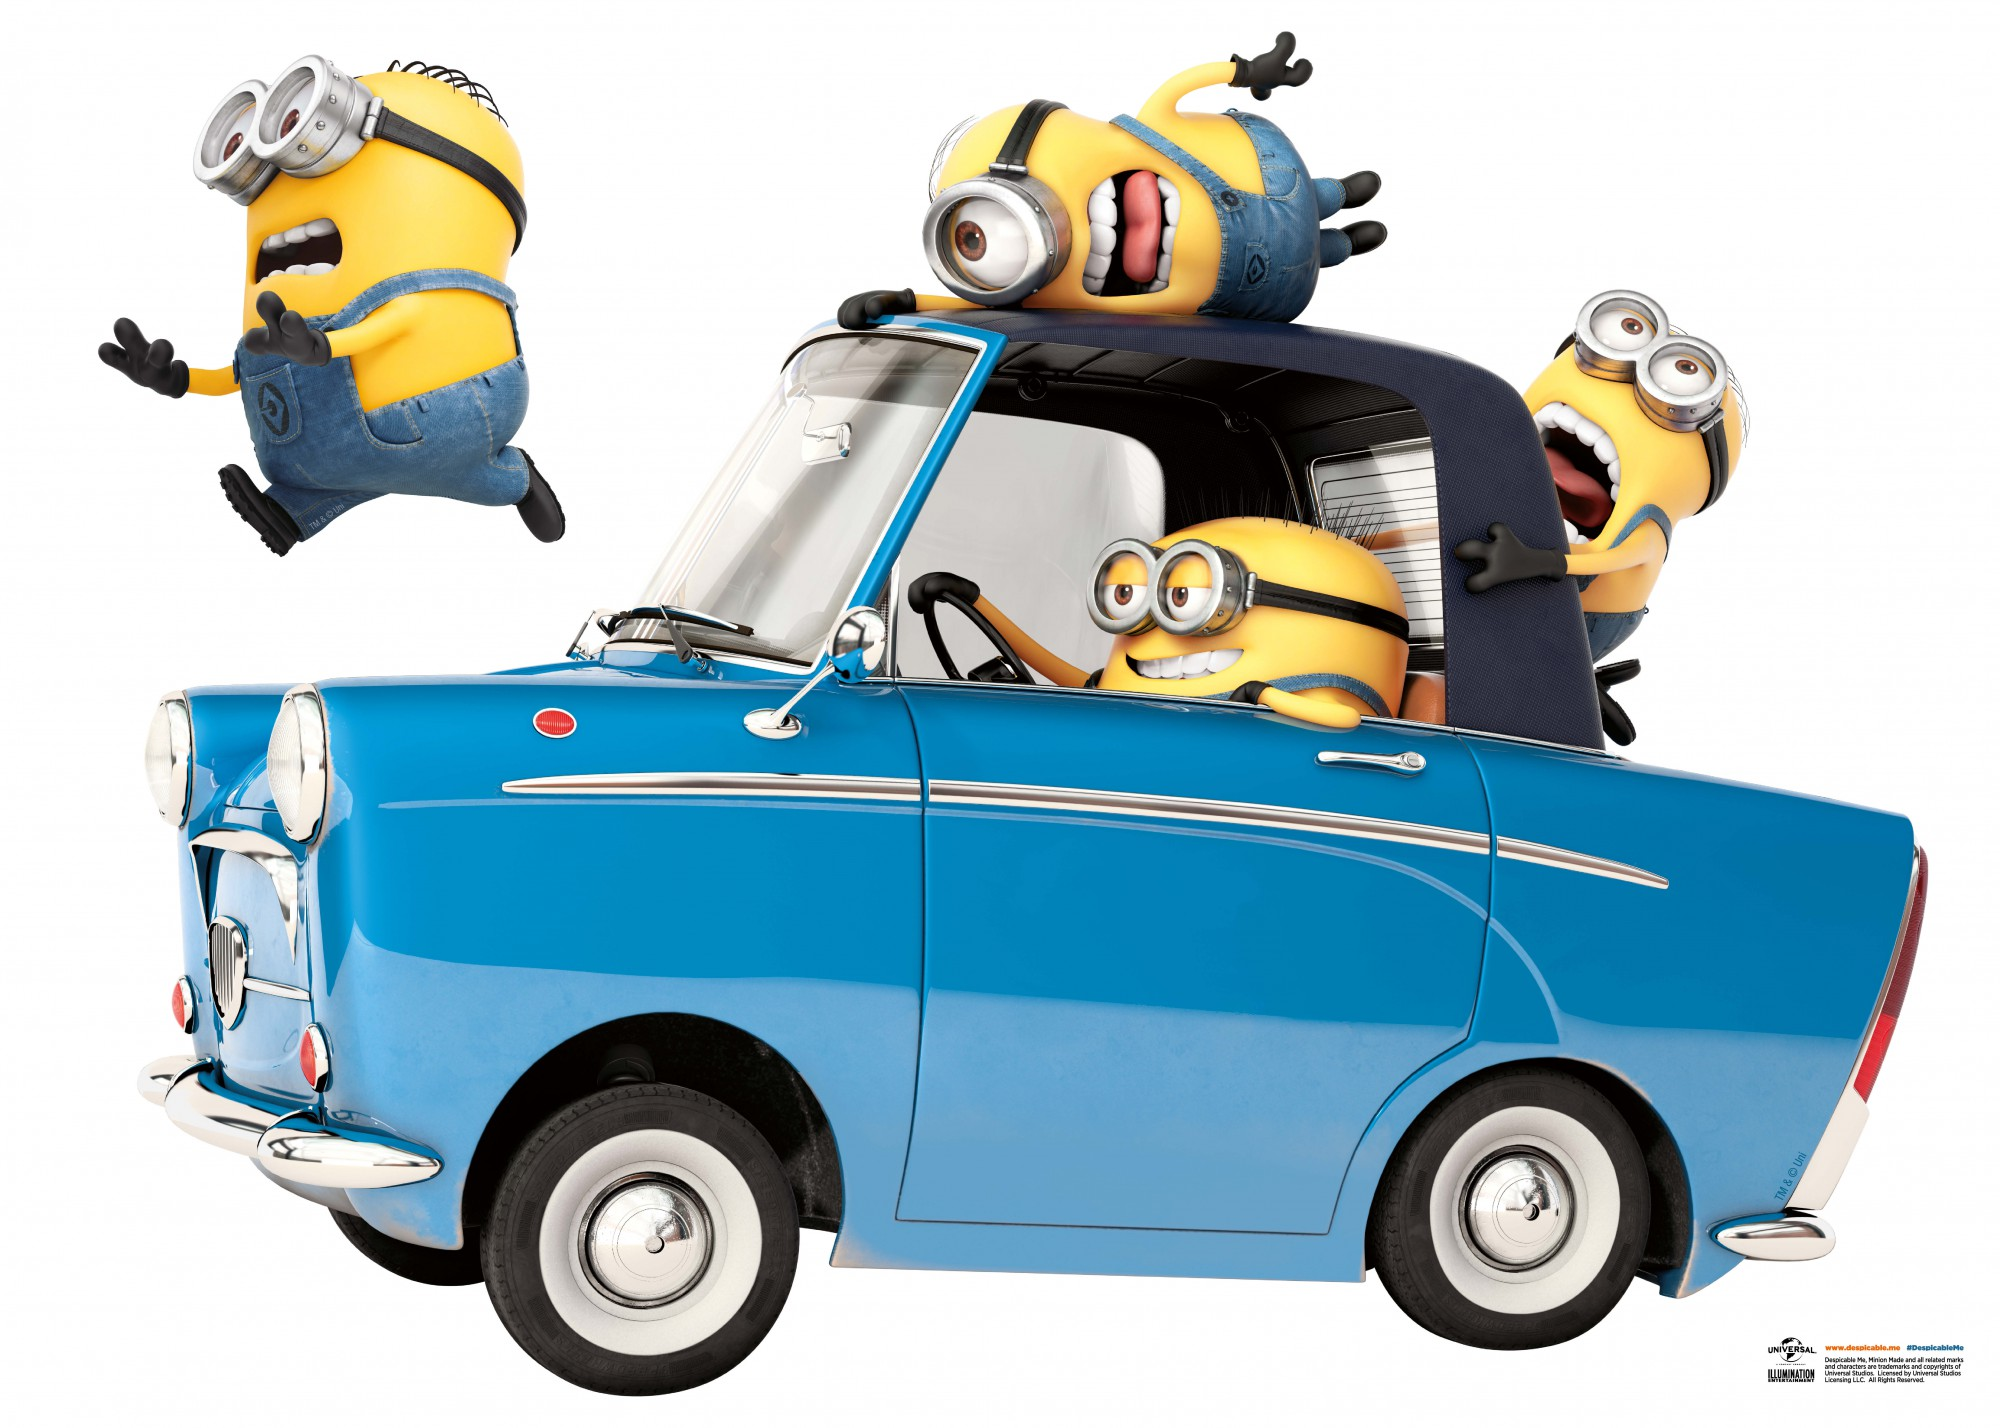 Wall Stickers How To Apply Minions Car Wall Stickers And Decorations By Imagicom